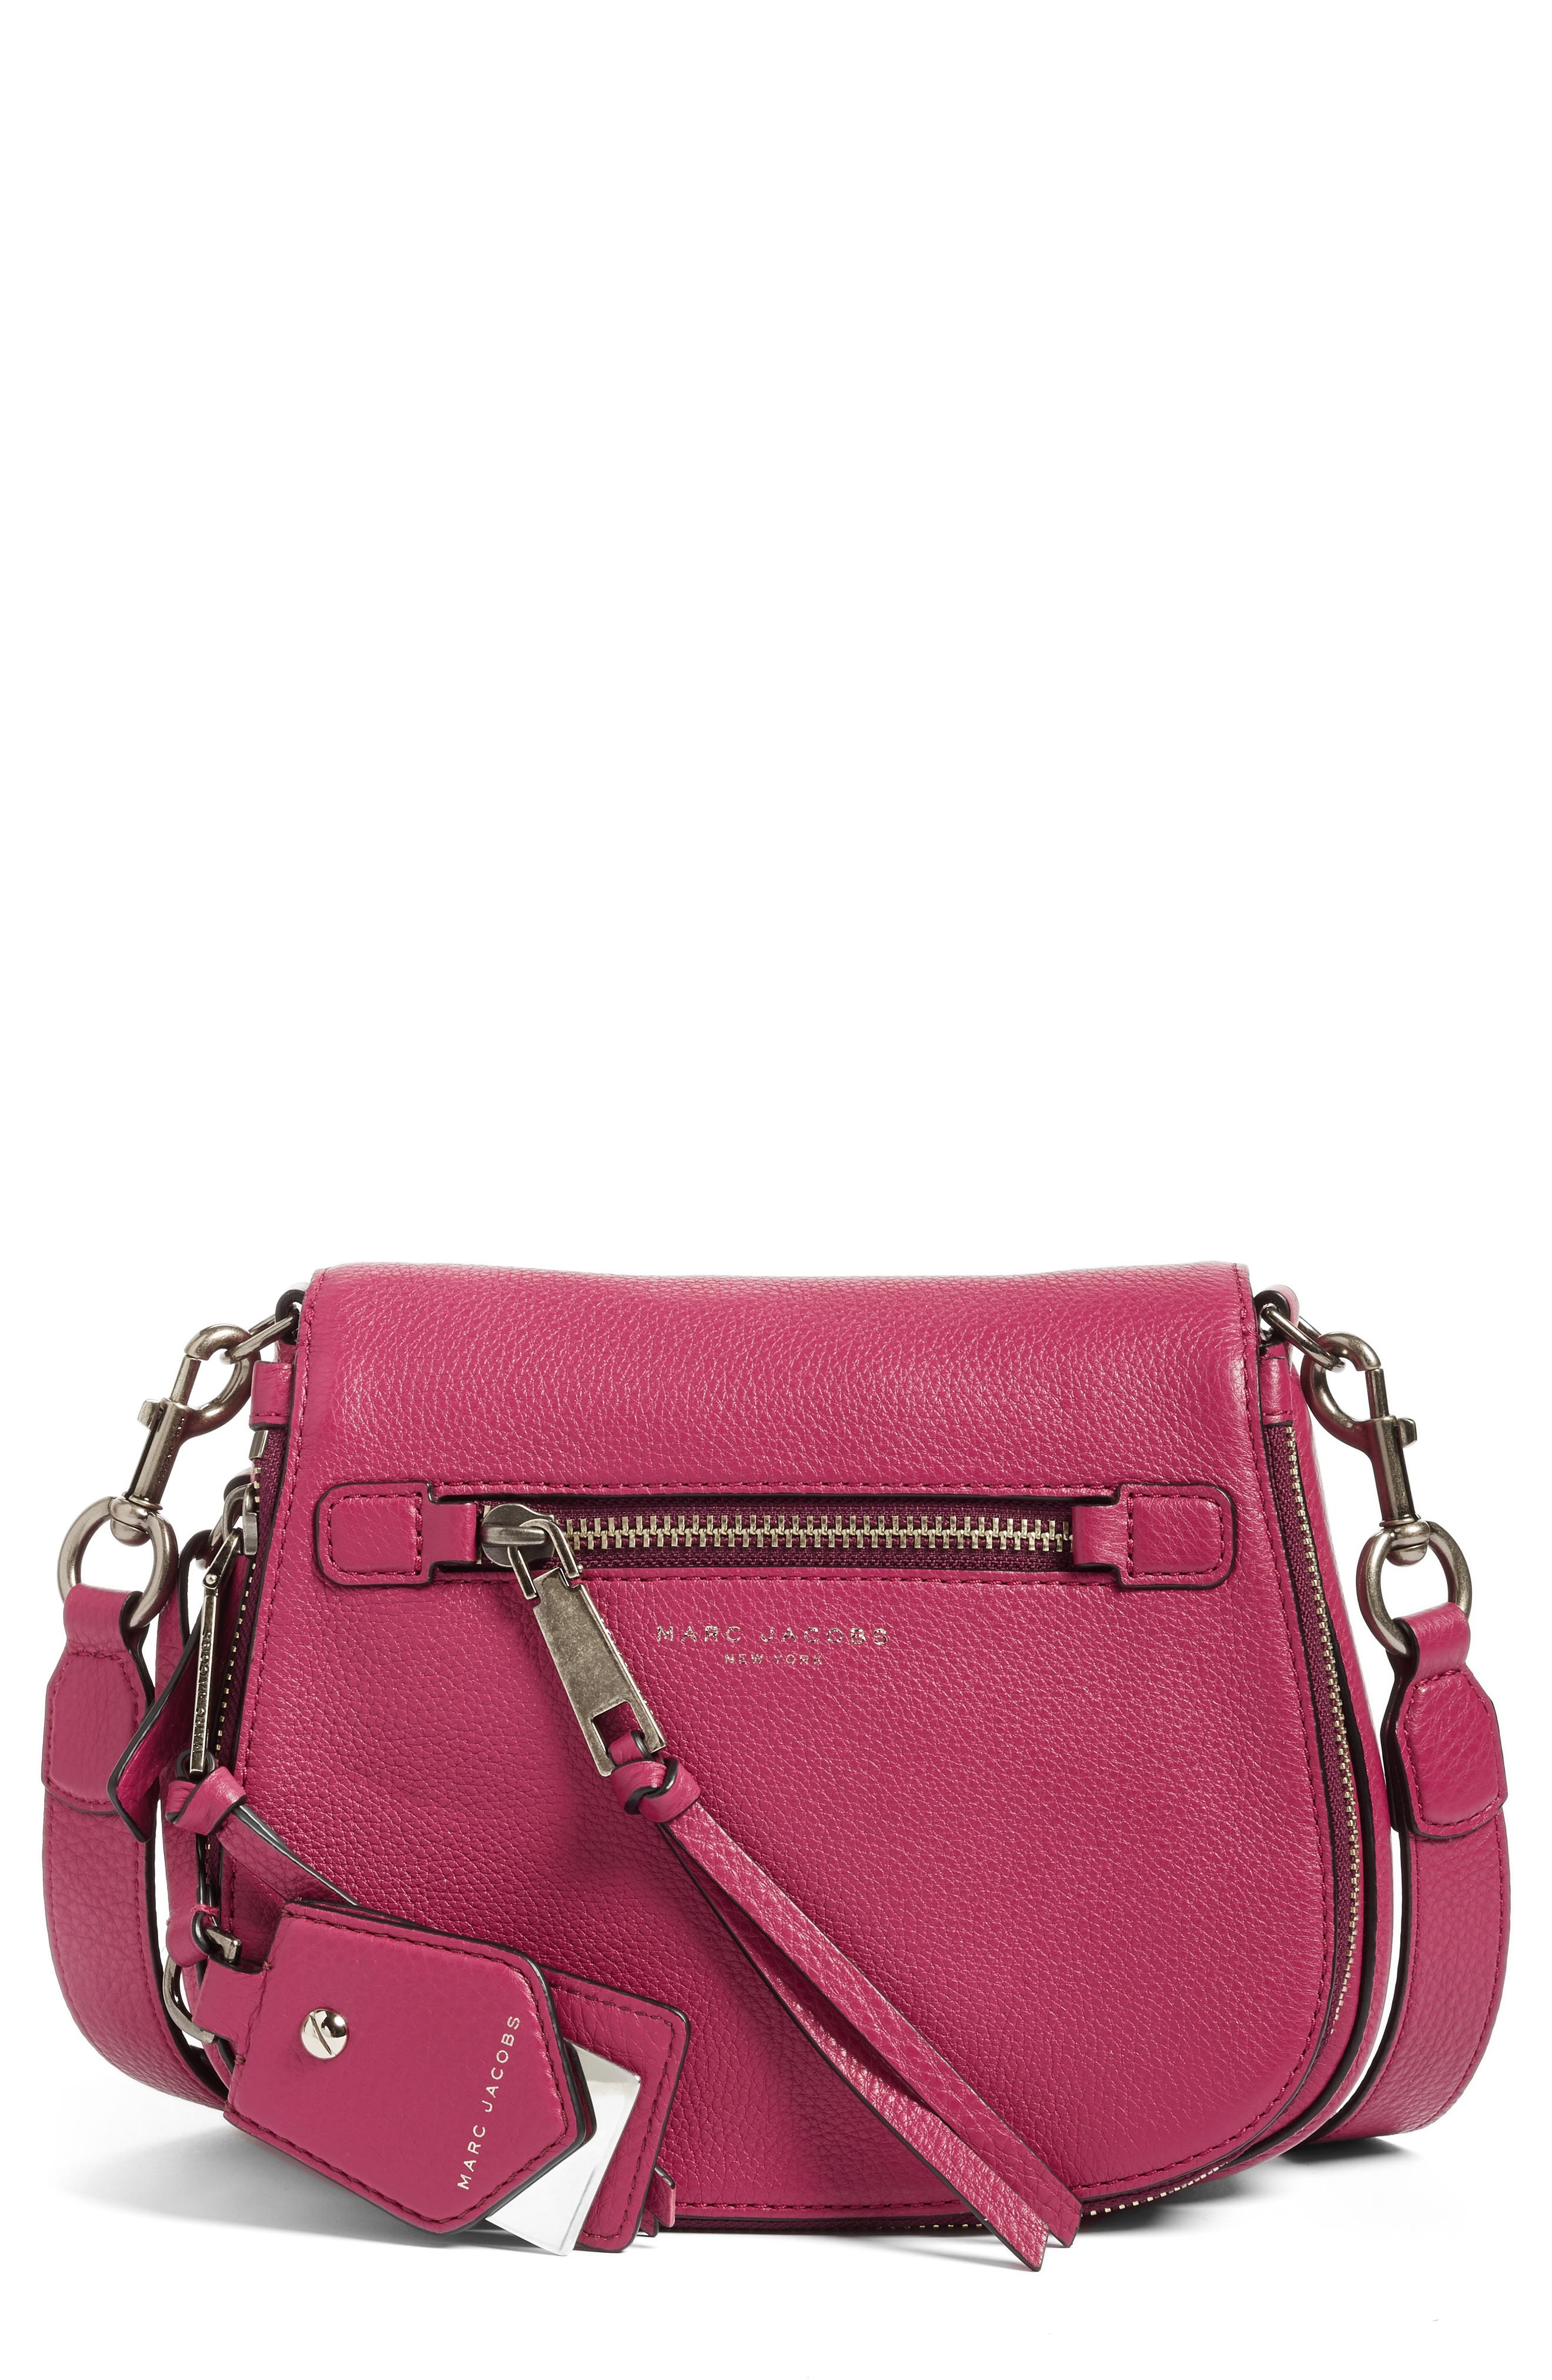 Small Recruit Nomad Pebbled Leather Crossbody Bag,                             Alternate thumbnail 27, color,